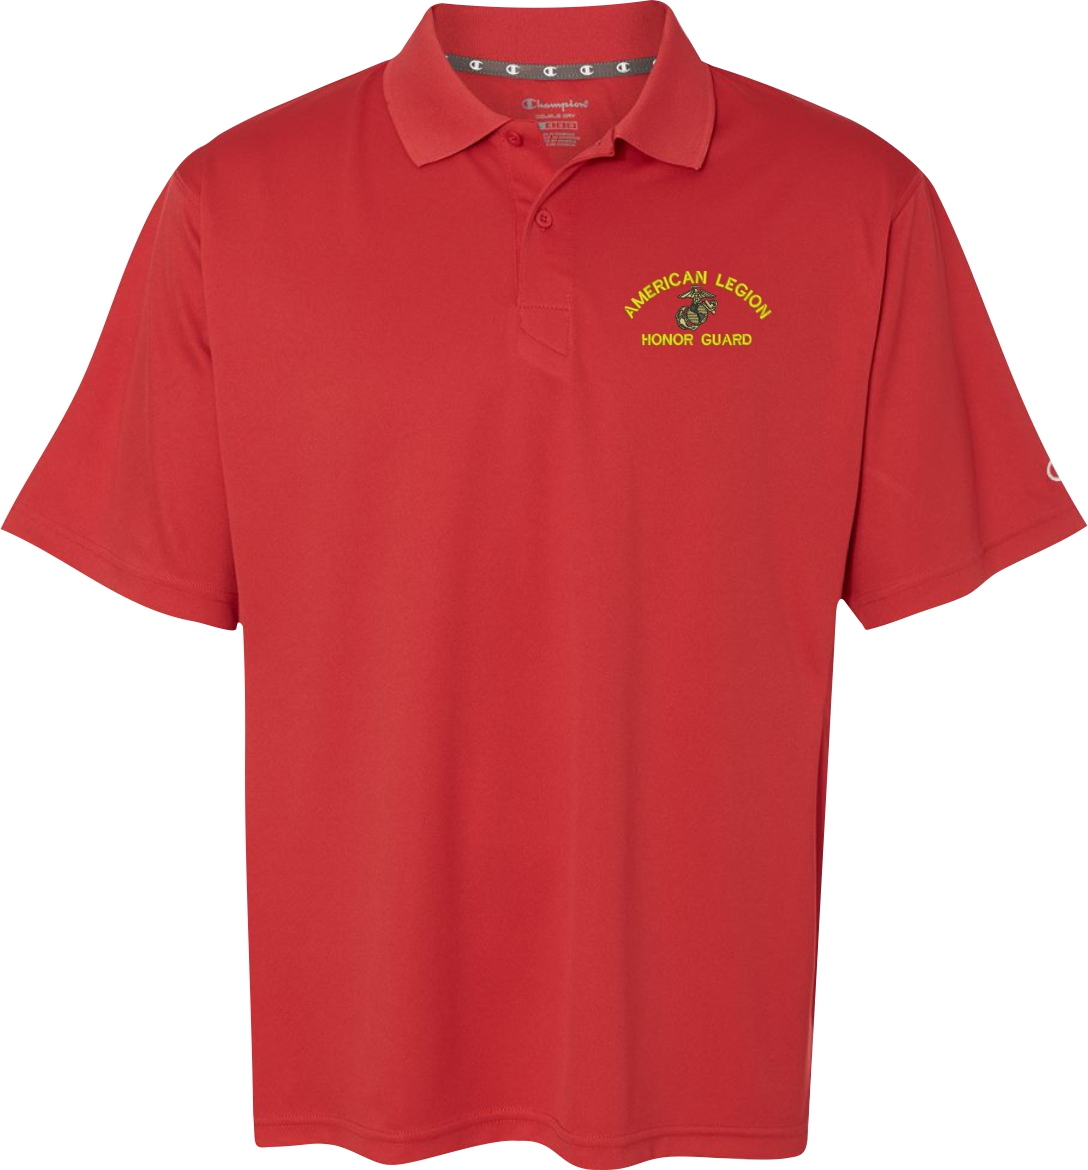 Marine corps clothing stores